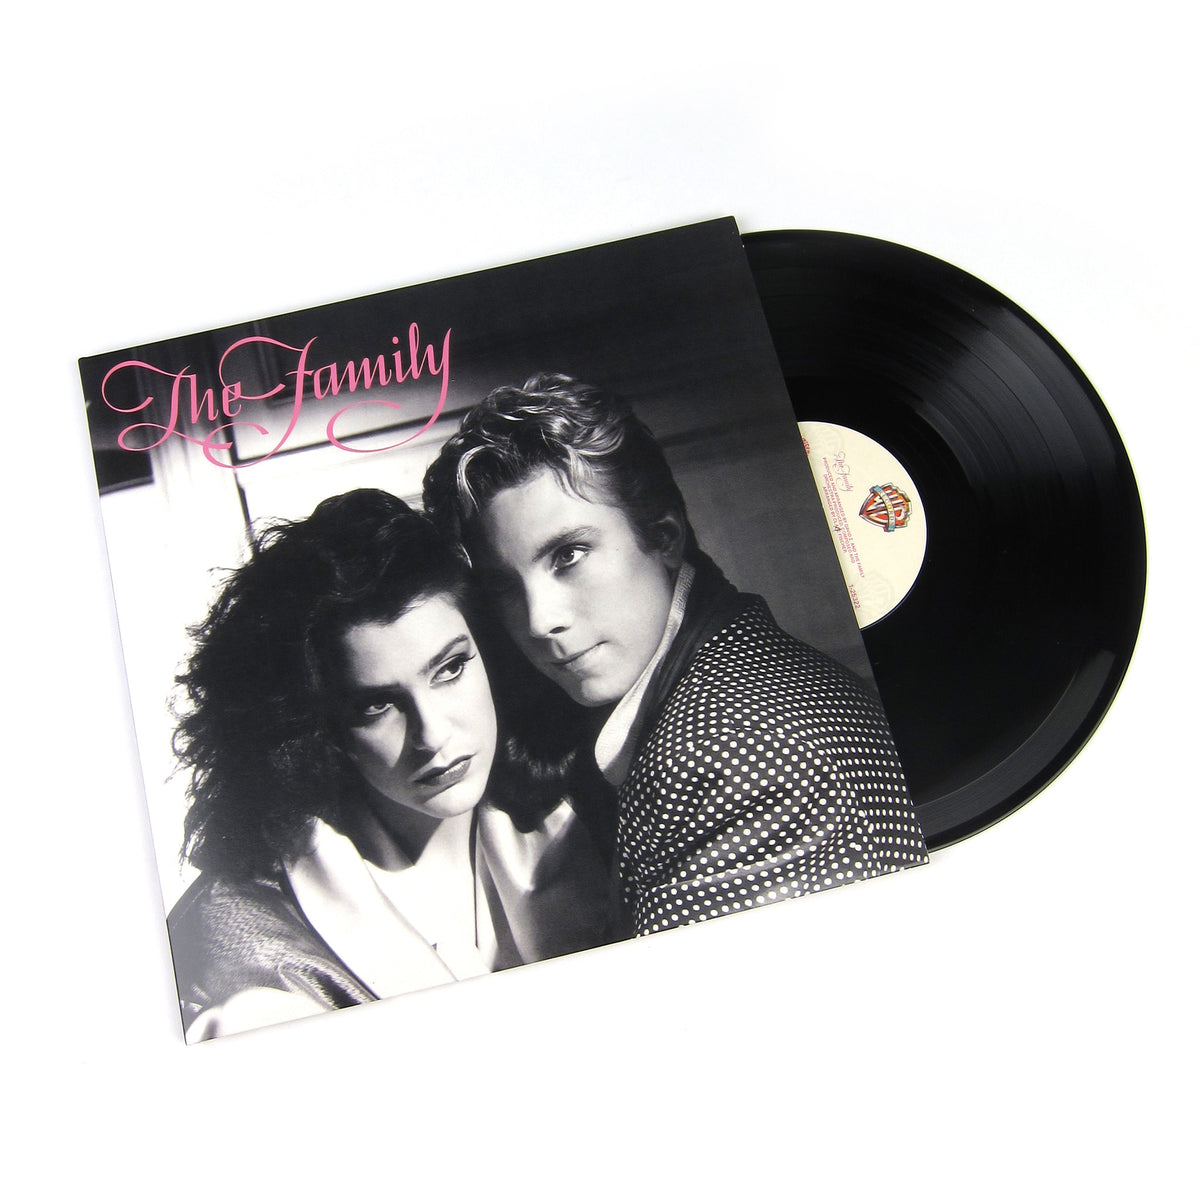 The Family: The Family (Prince, Paisley Park) Vinyl LP